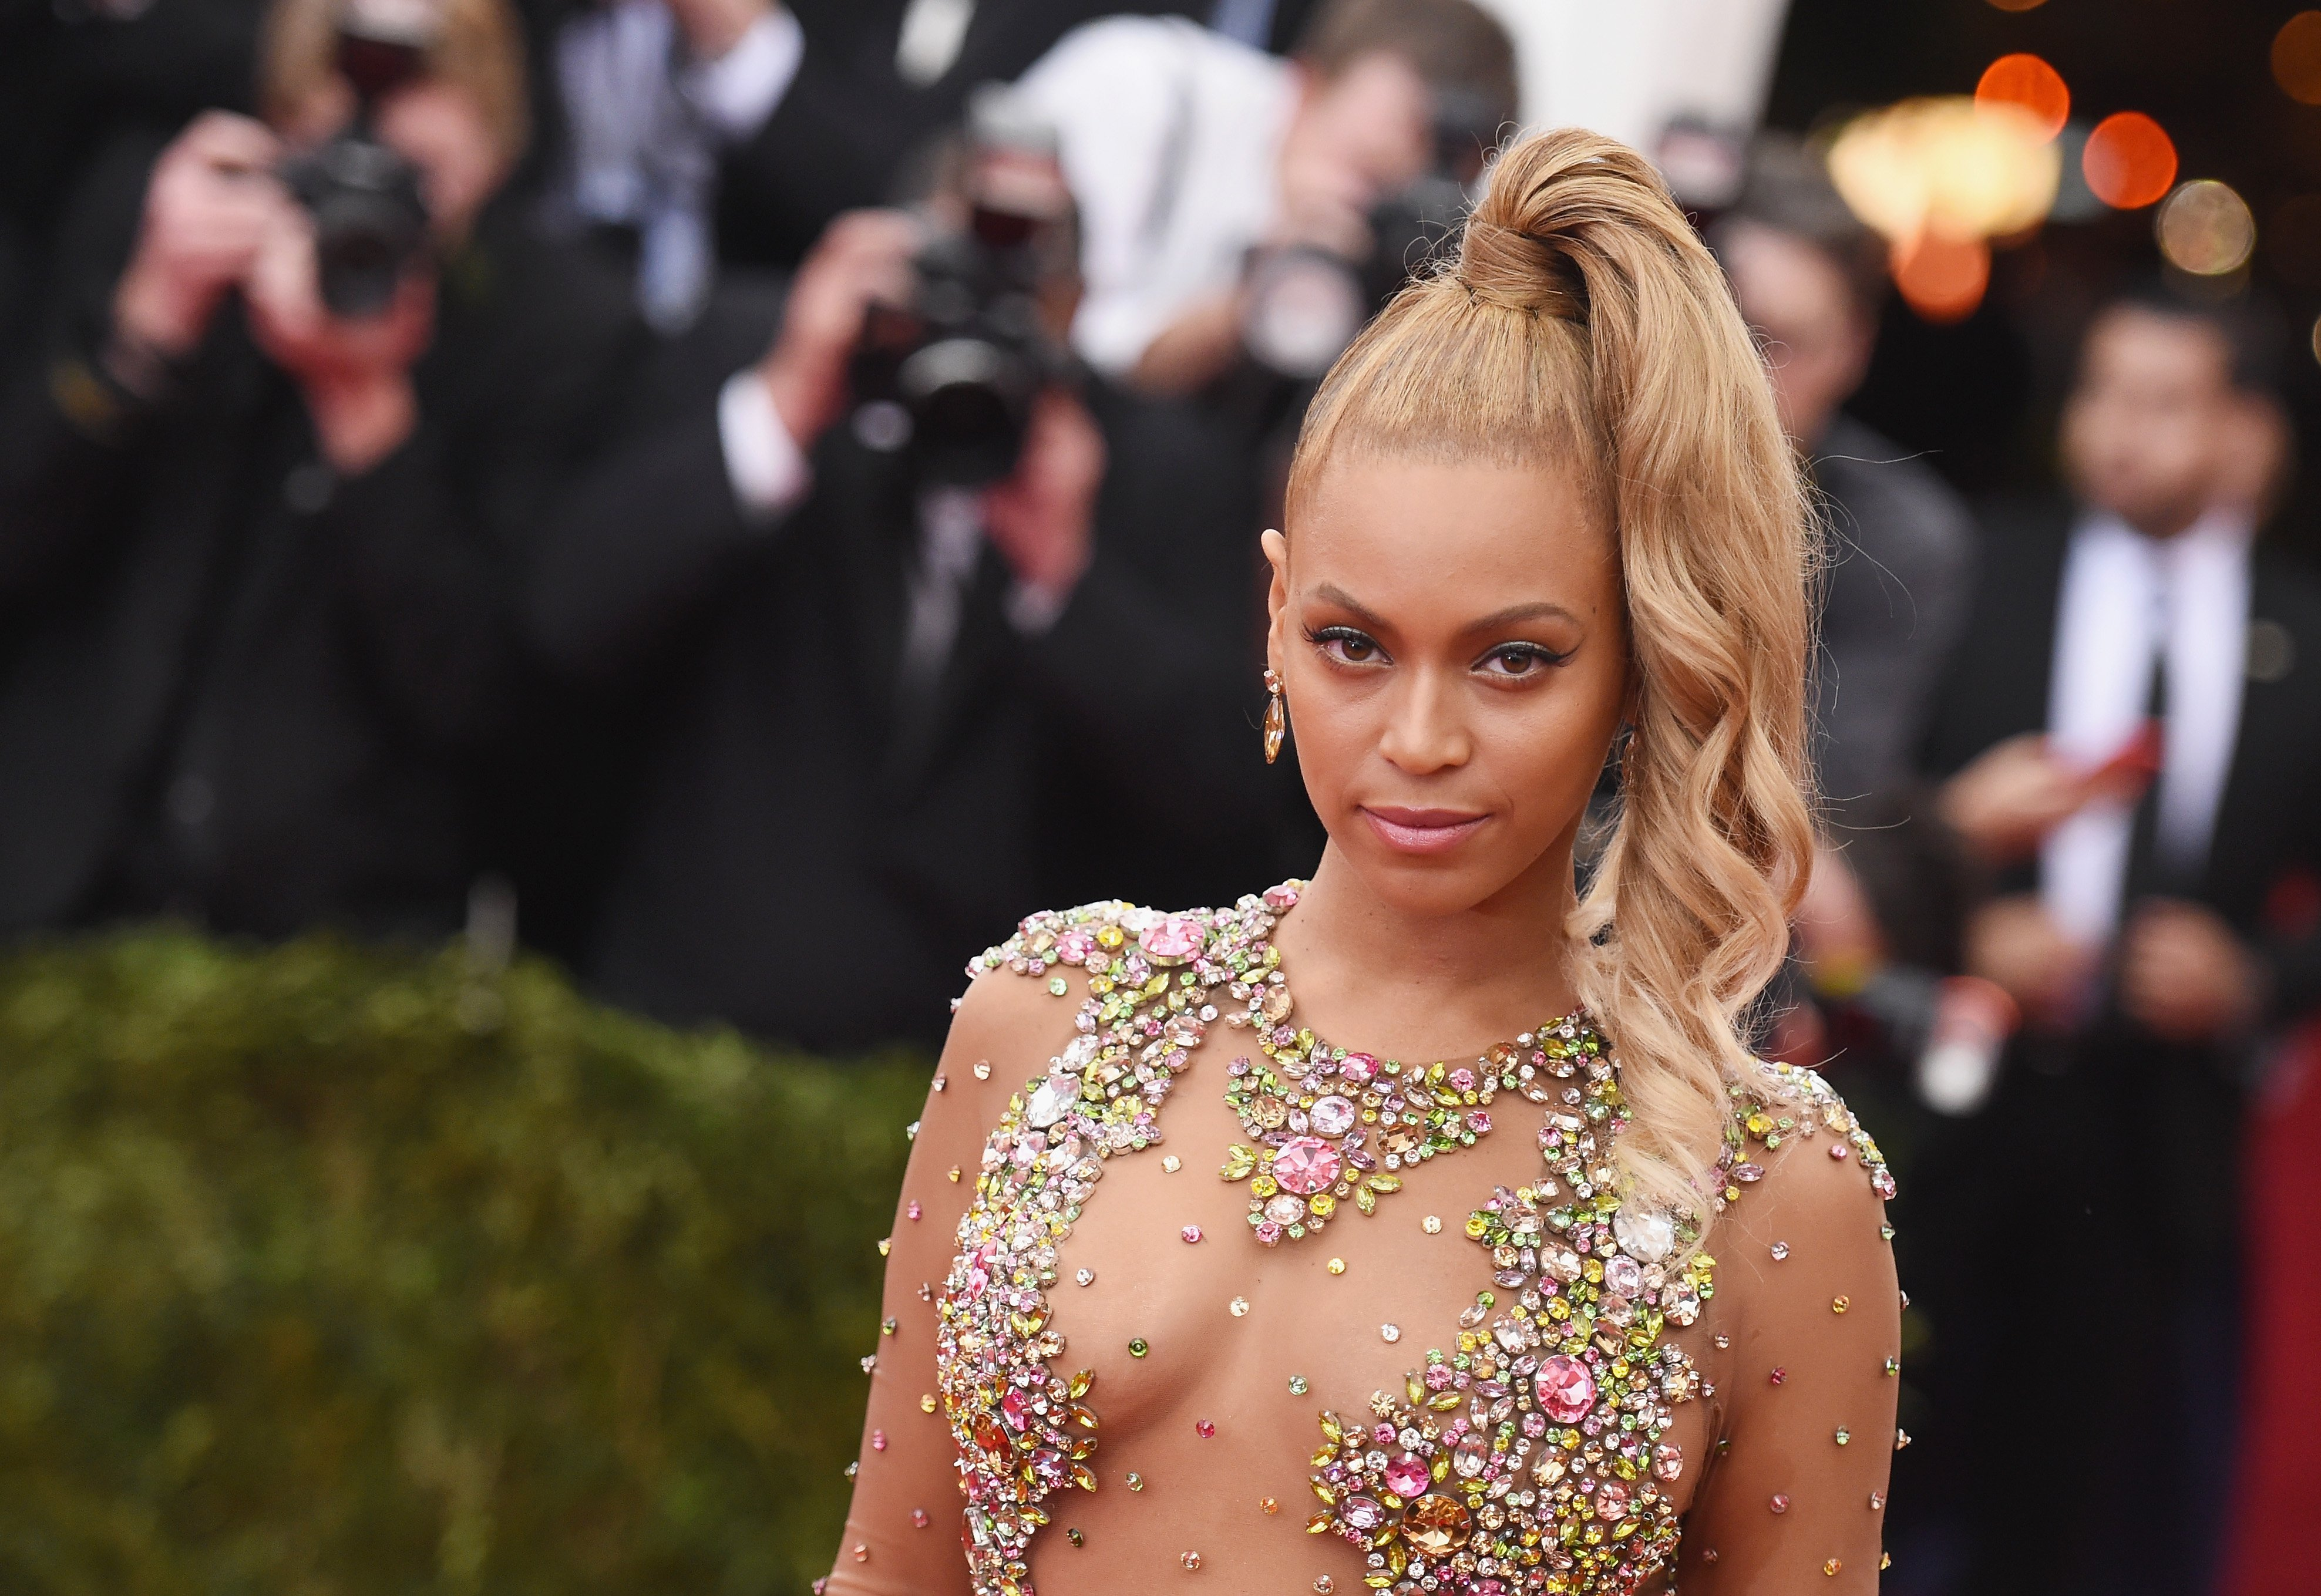 Beyonce at the 'China: Through The Looking Glass' Costume Institute Benefit Gala in New York City on May 4, 2015. | Photo: Getty Images